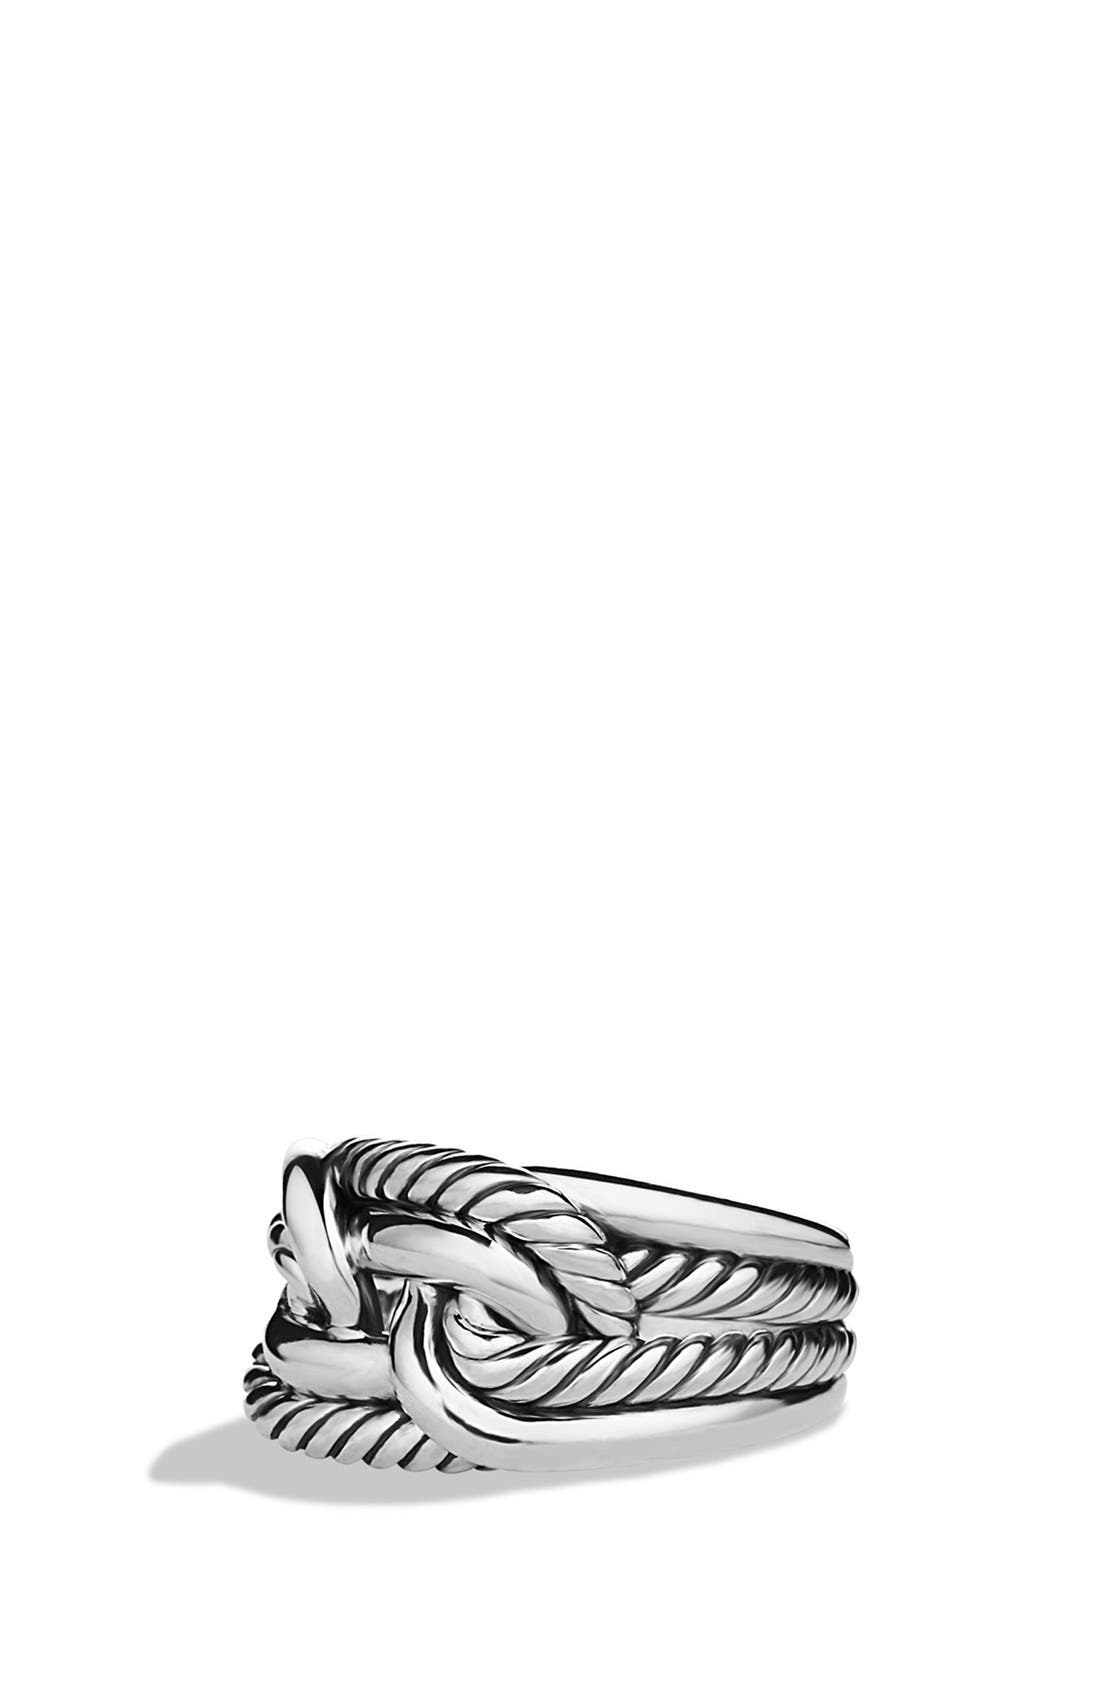 Alternate Image 1 Selected - David Yurman 'Labyrinth' Ring